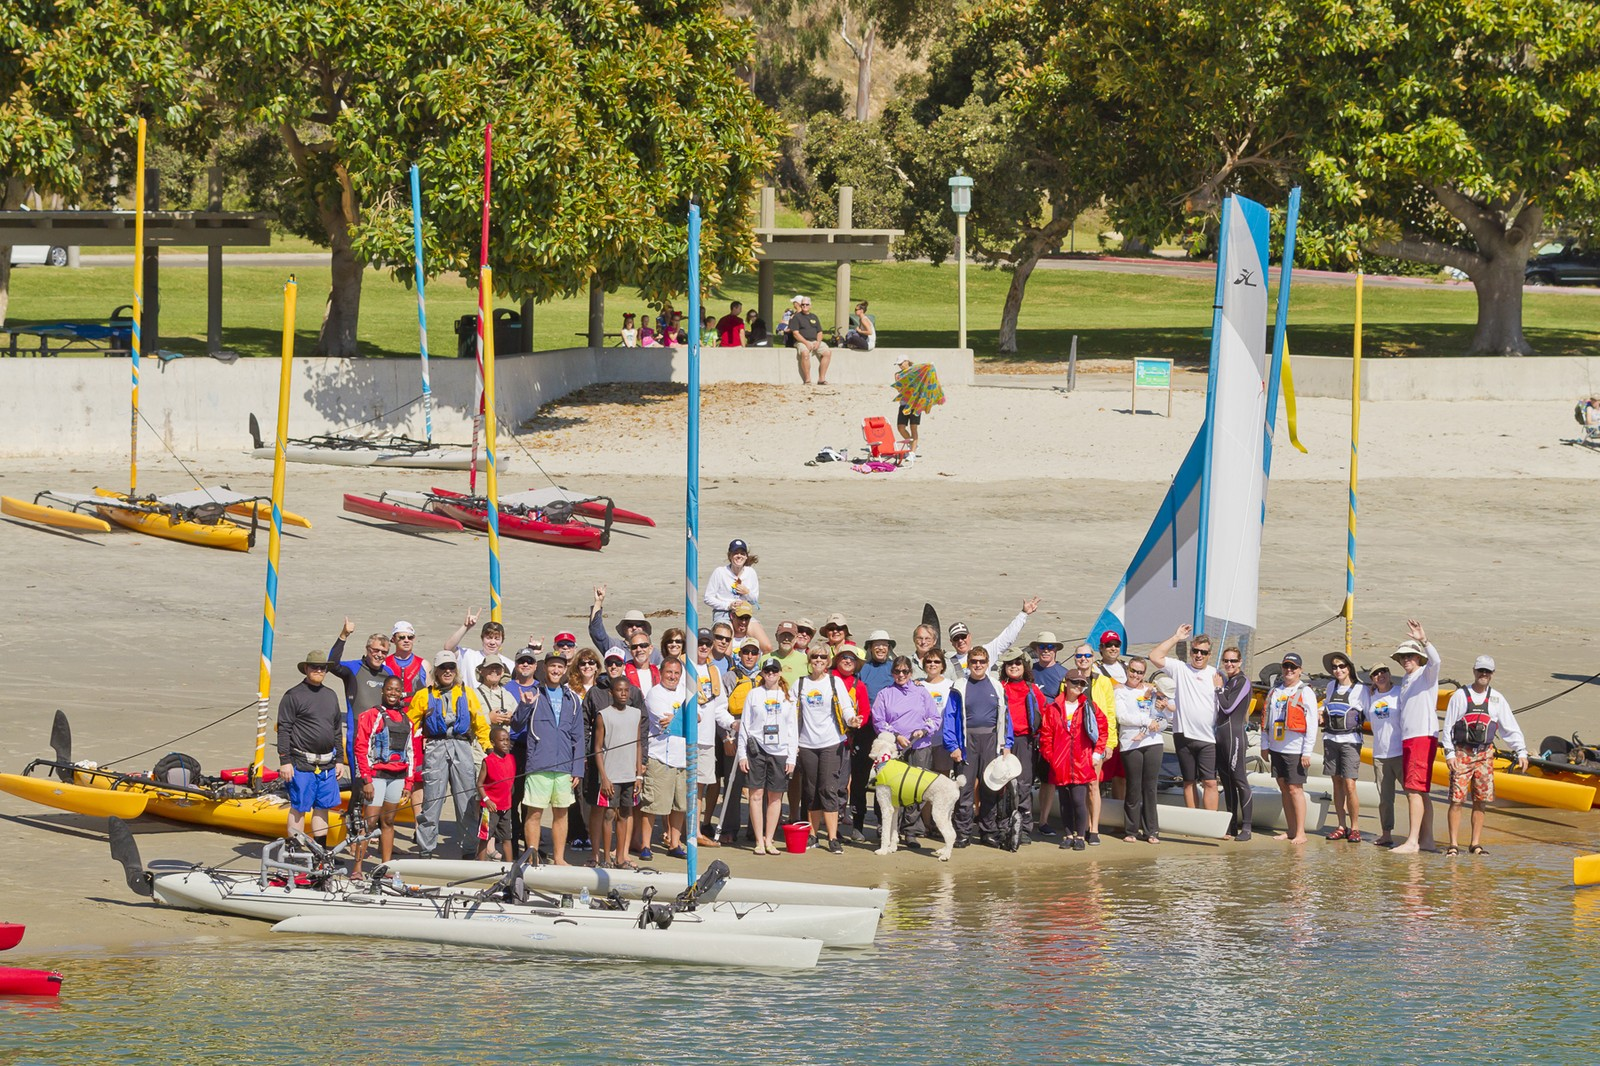 Hobie Island Club - Dana Point October 2012